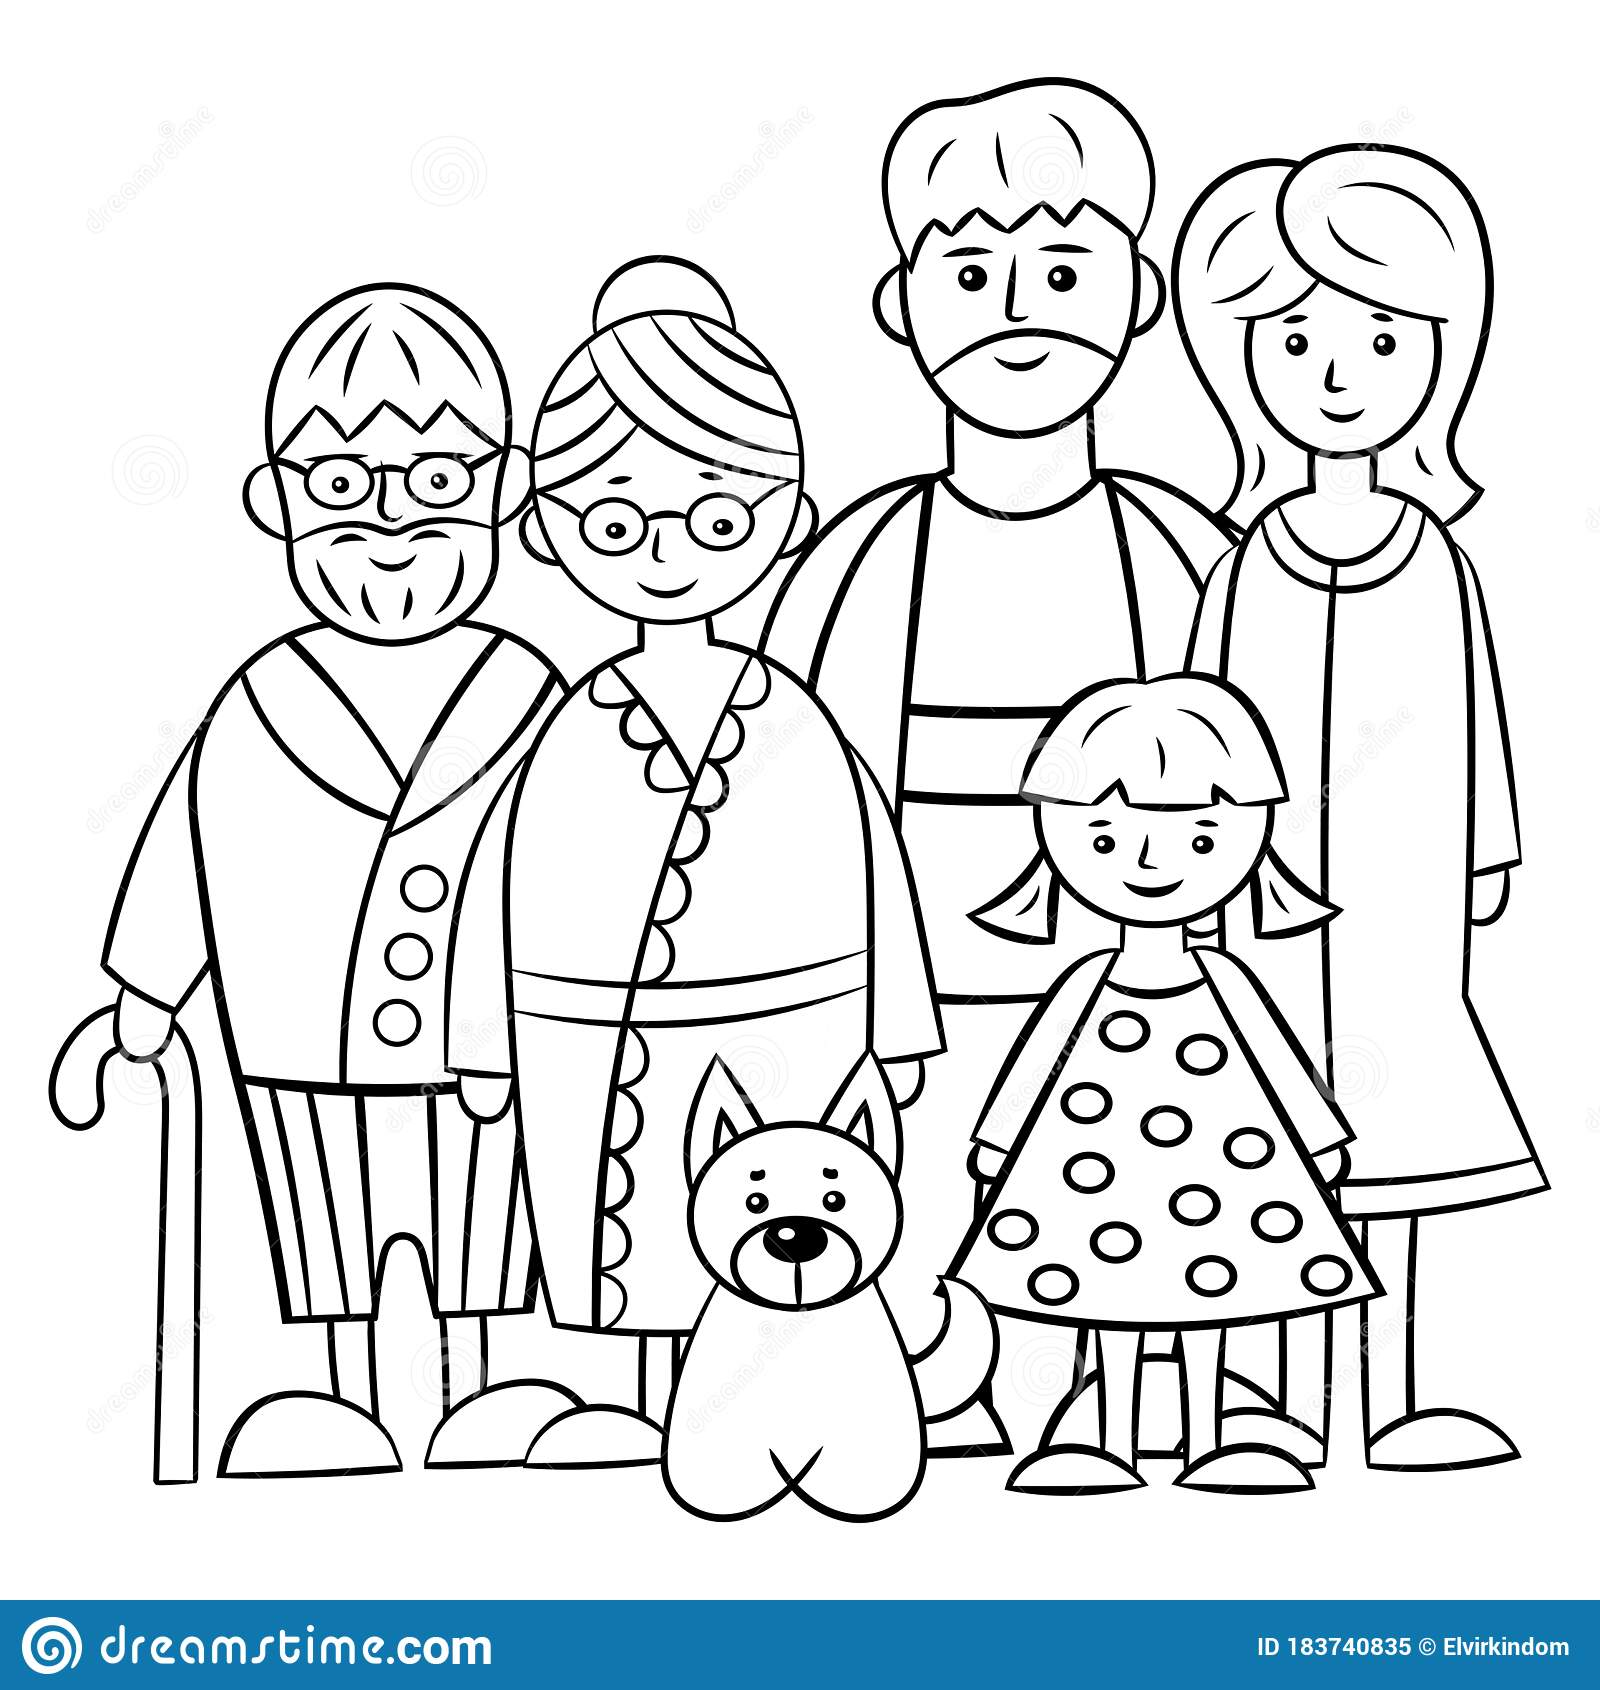 Family Man Coloring Stock Illustrations 859 Family Man Coloring Stock Illustrations Vectors Clipart Dreamstime